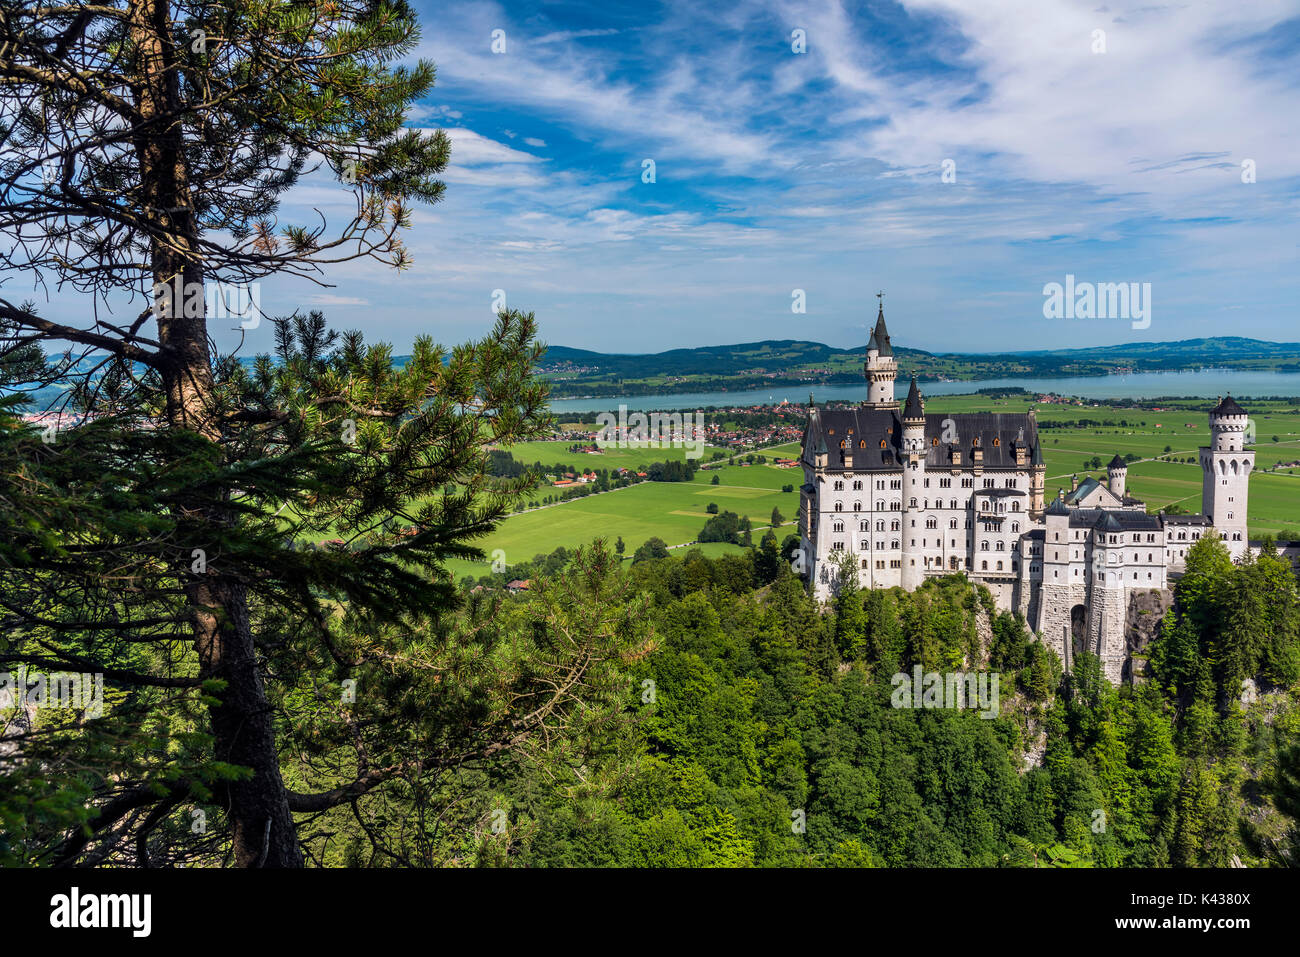 Neuschwanstein Castle or Schloss Neuschwanstein, Schwangau, Bavaria, Germany - Stock Image